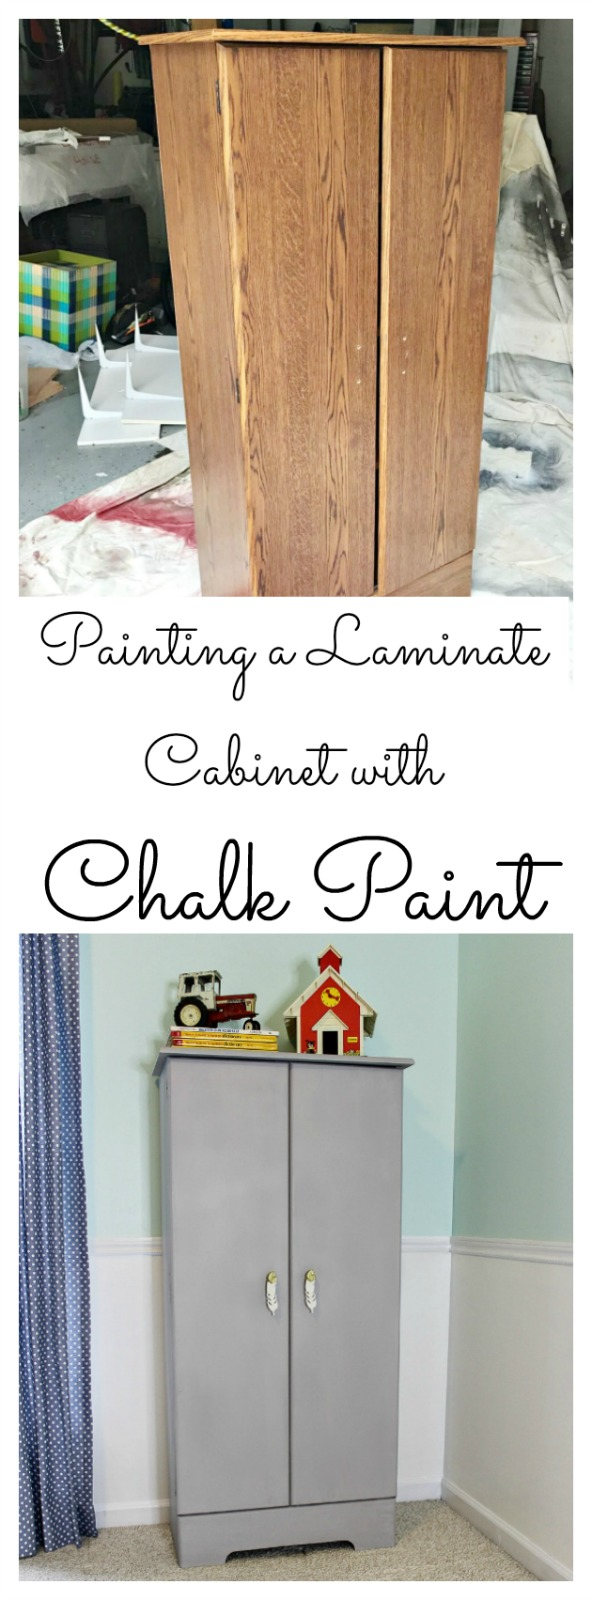 this is my experience painting a laminate cabinet with chalked spray paint